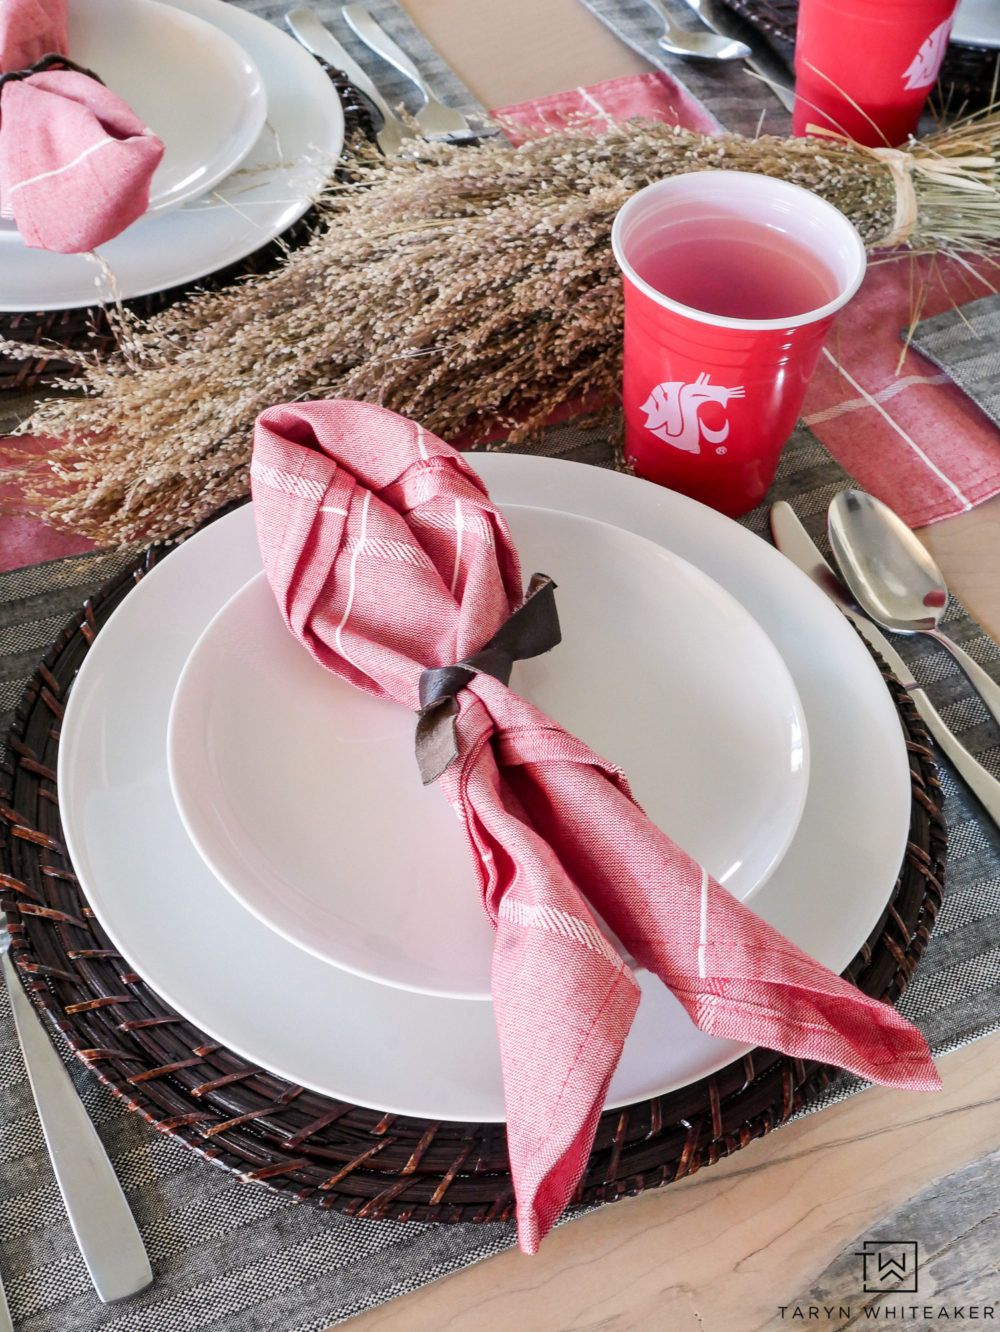 Simple, football themed tablescape featuring fall favorite with wheat grass, red solo cups and cute napkins.